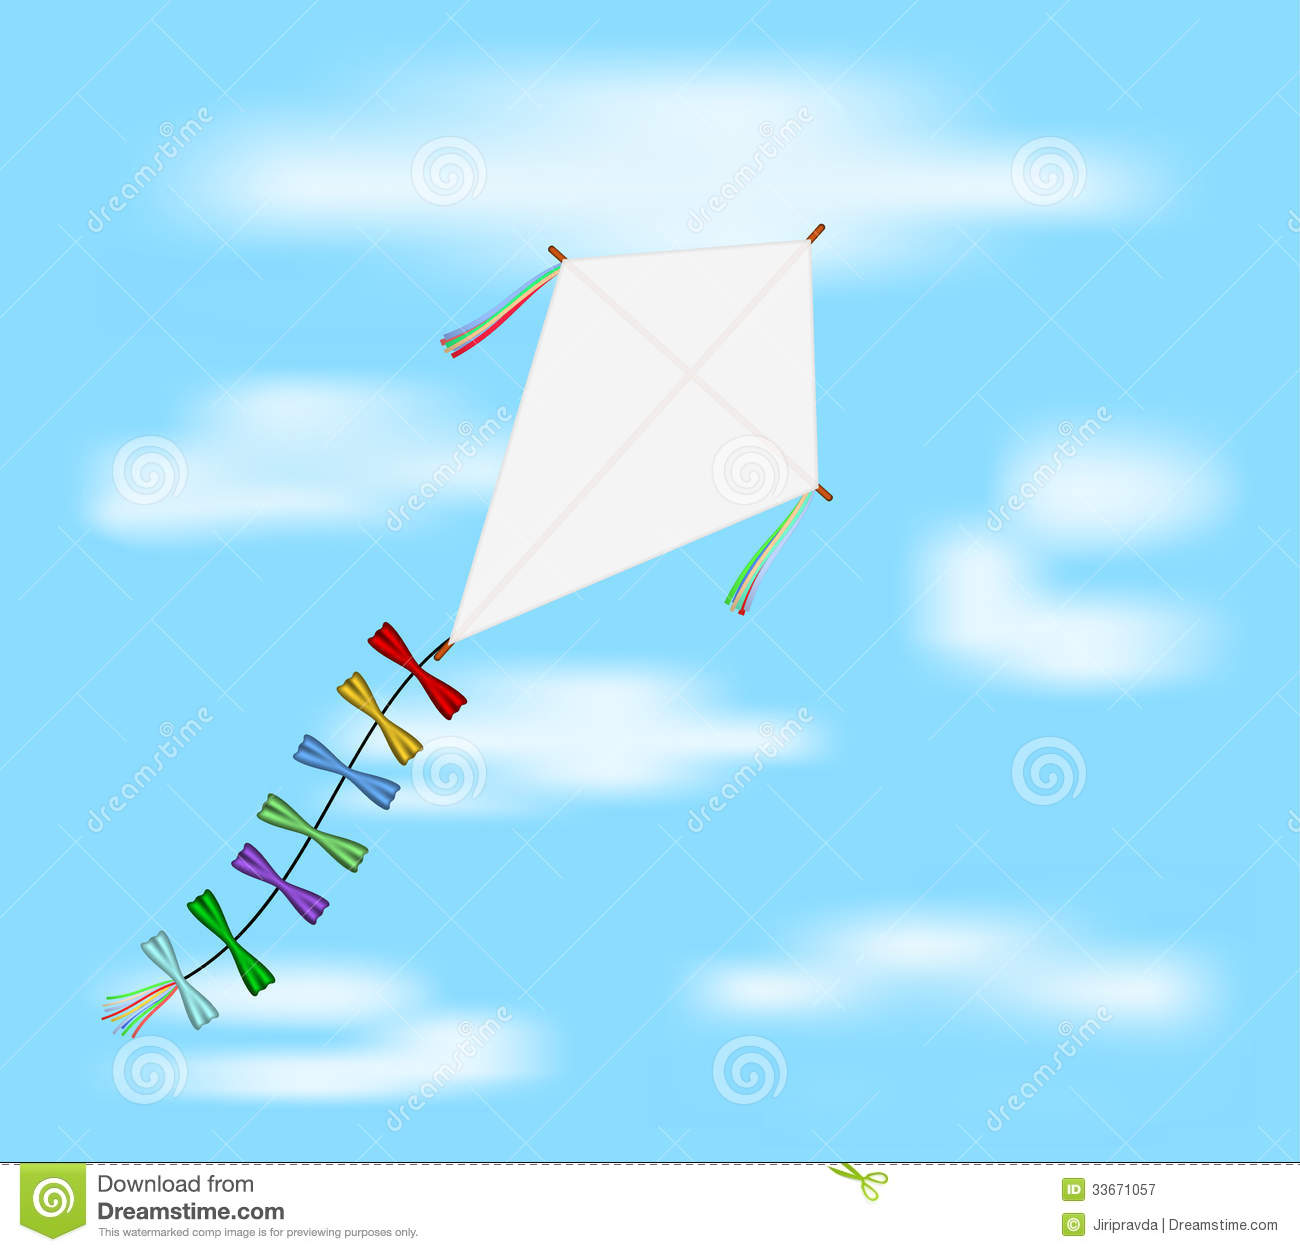 kite flying essay   selfguidedlife essay on advantages of kite flying